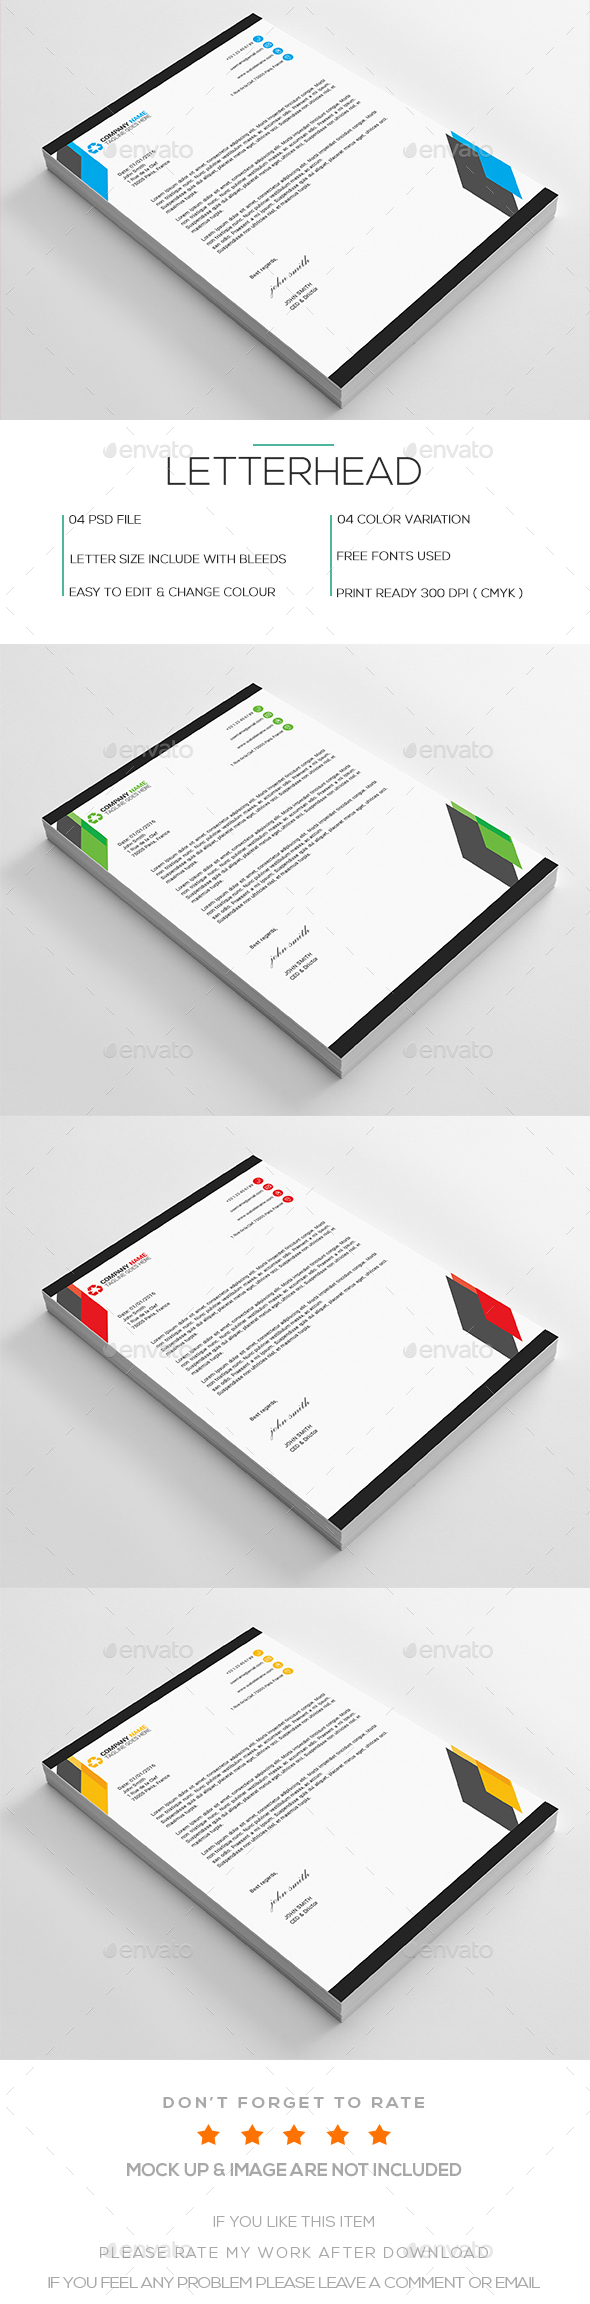 Letterhead design template psd letterhead design templates letterhead design template psd spiritdancerdesigns Image collections